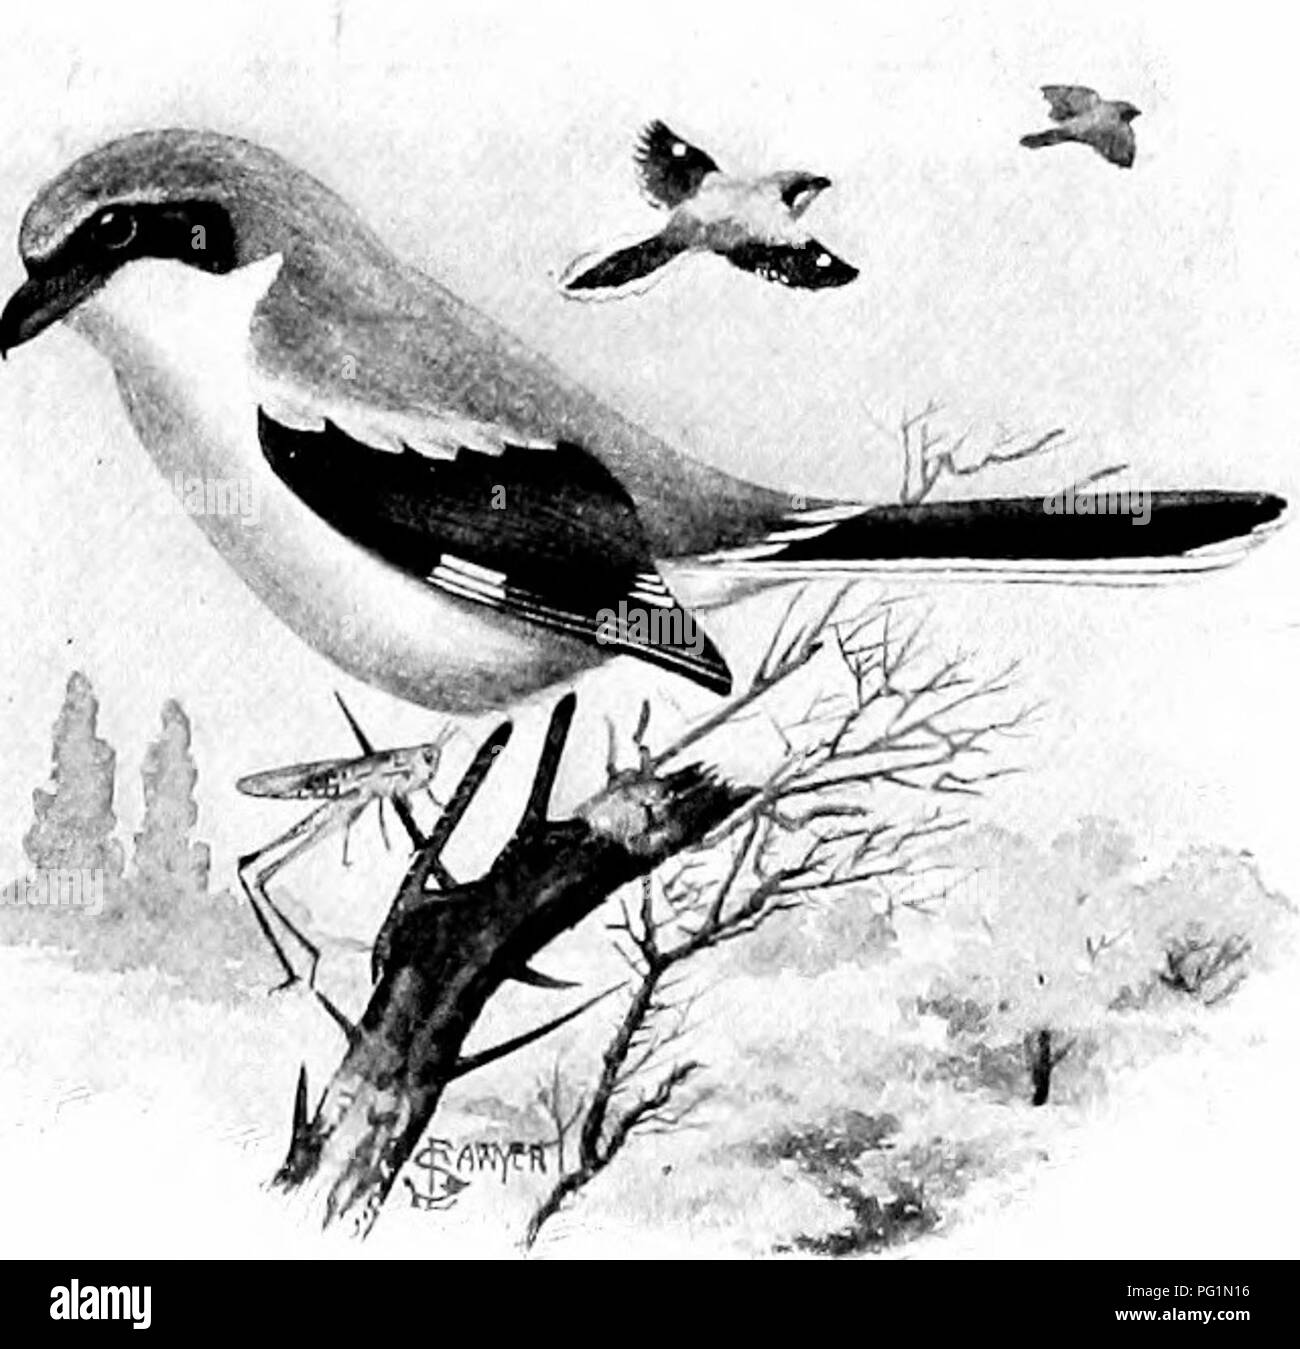 . The American natural history; a foundation of useful knowledge of the higher animals of North America. Natural history. THE VIEEOS AND SHRIKES 191 covered banks. They are watchful and suspi- cious, but when flushed they do not immediately fly bej'ond gunshot, as nowadaj^s every bird should do. The Louisiana Water-Thrush strong- ly resembles the wood-thrush, but is one-fourth smaller. THE VIREO FAMILY. Vireonidae. It is quite difficult to point out pecuUarities by which the vireos can be distinguished from the warblers. They are placed next to the shrikes because of a supposed resemblance to  - Stock Image